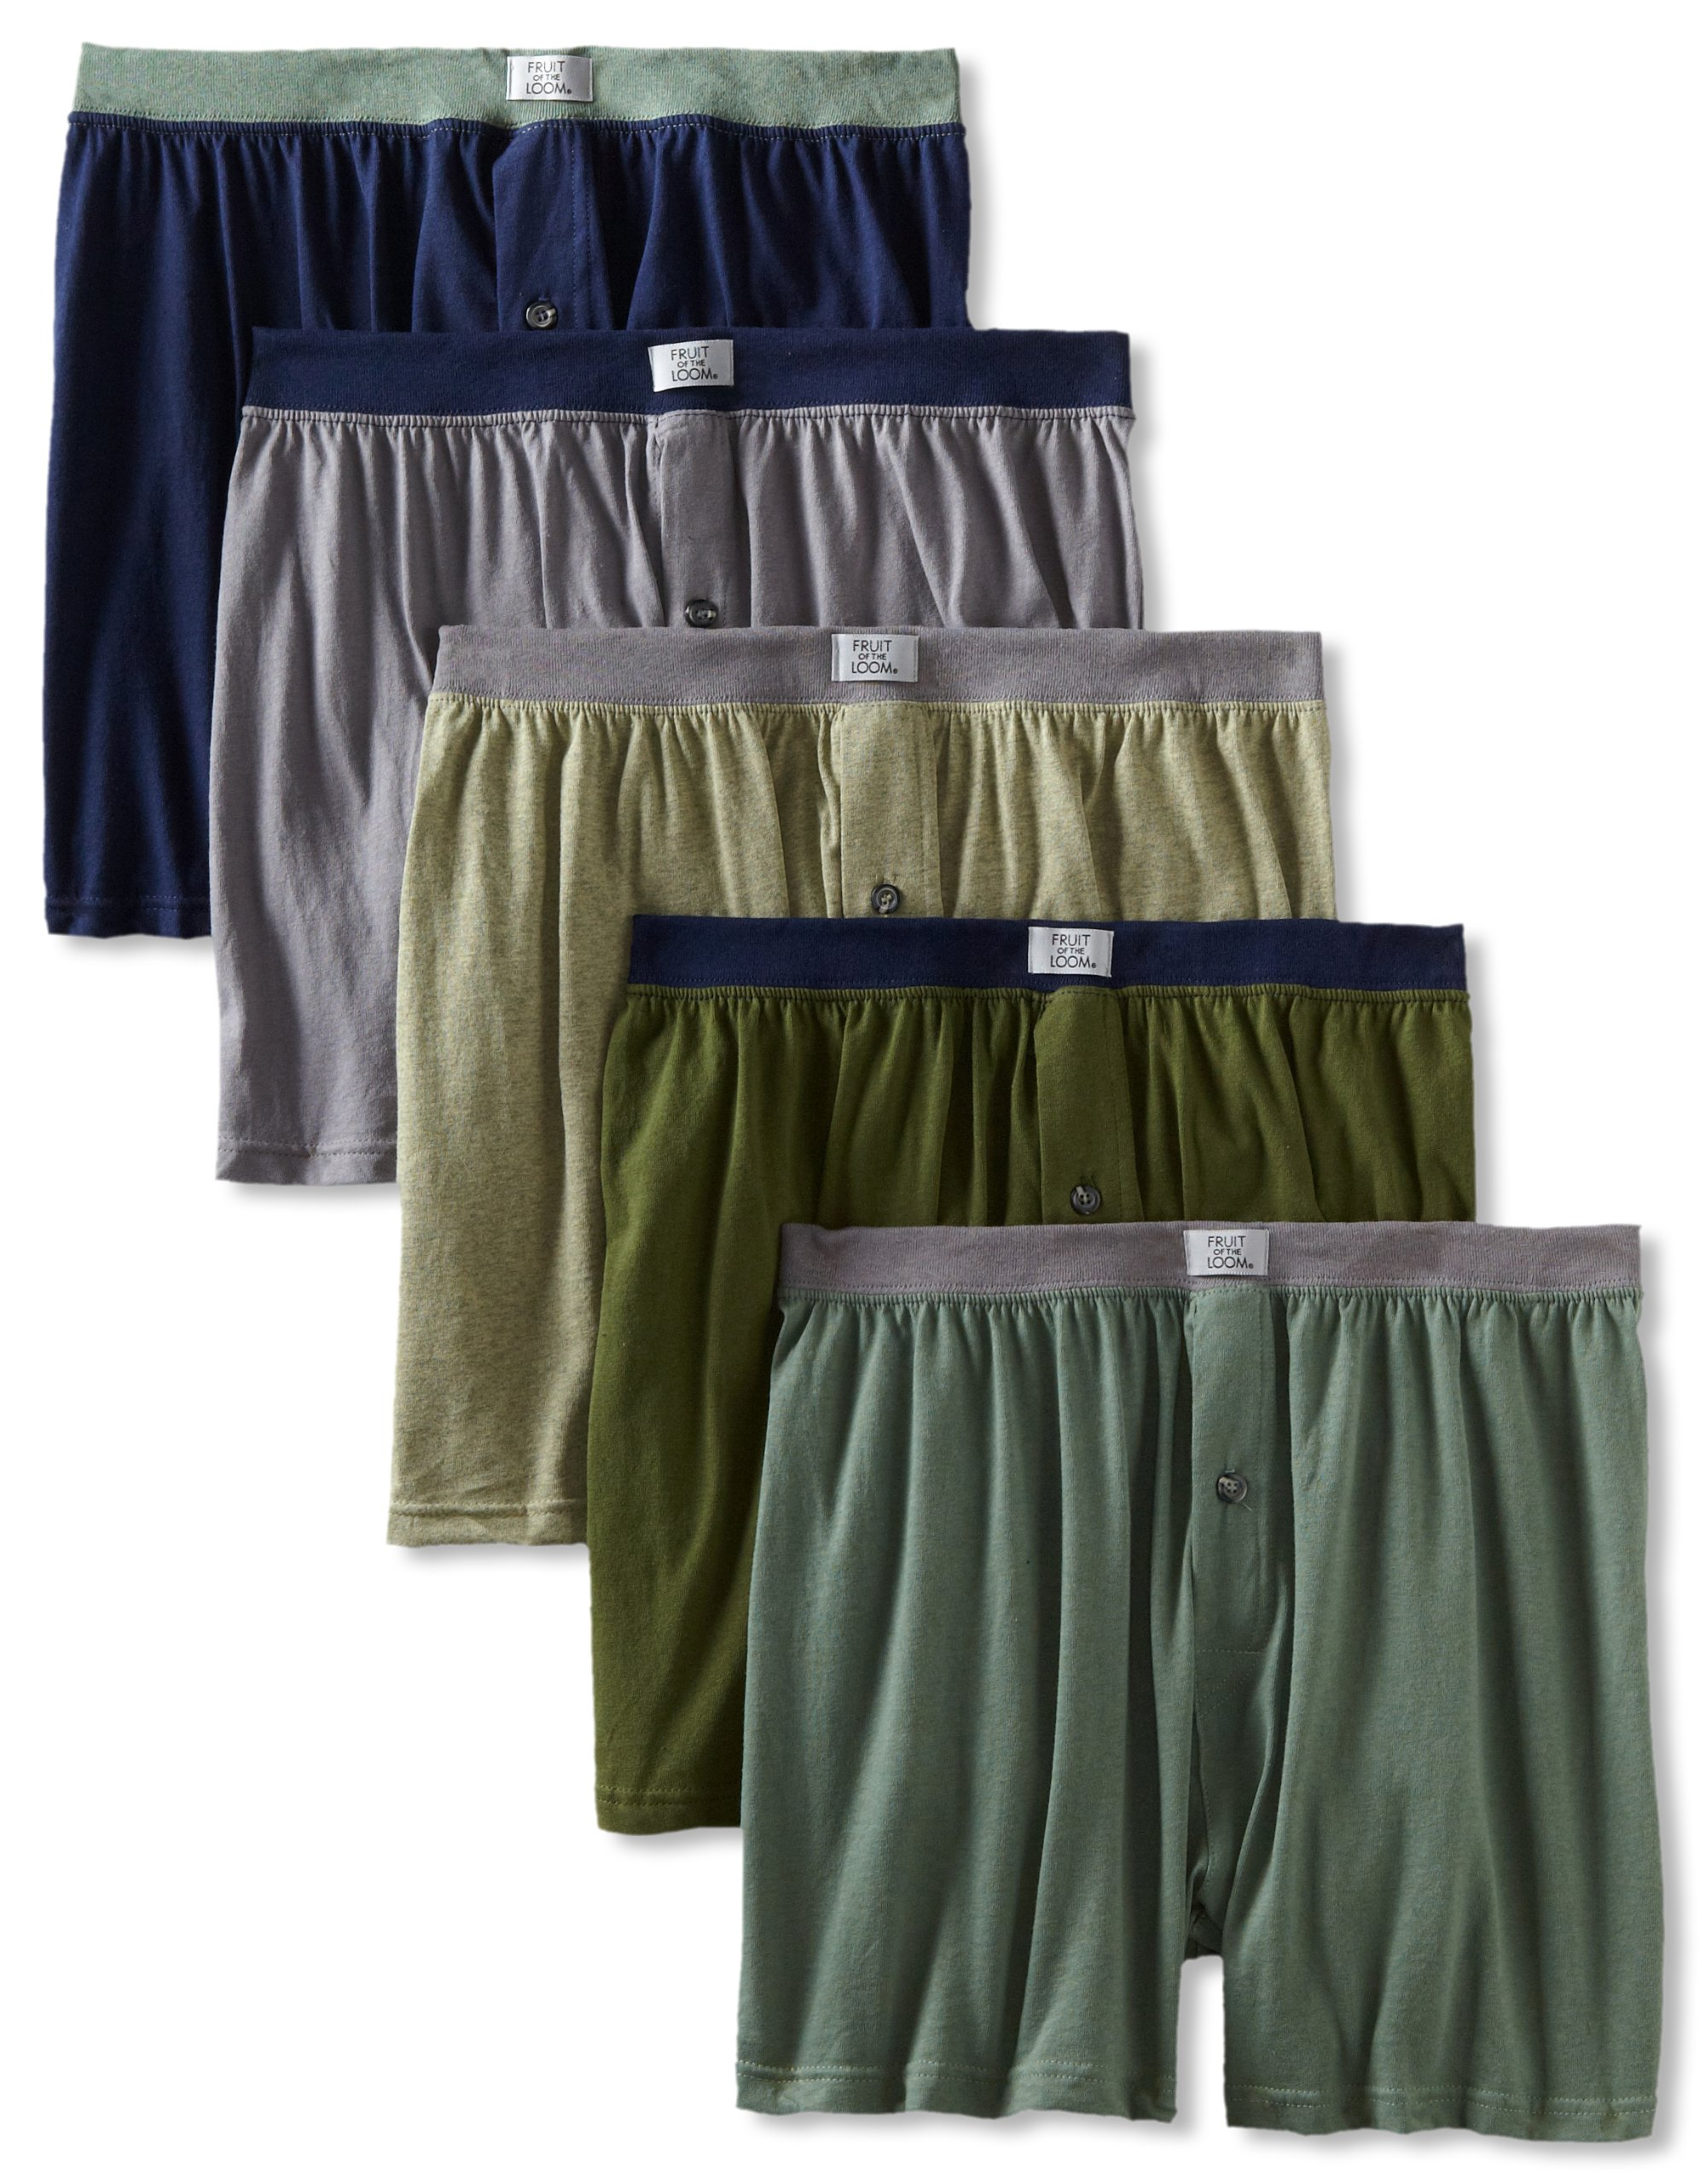 Fruit of the Loom Men's 5-Pack Soft Stretch Knit Boxer - Colors May Vary, Assorted, Medium